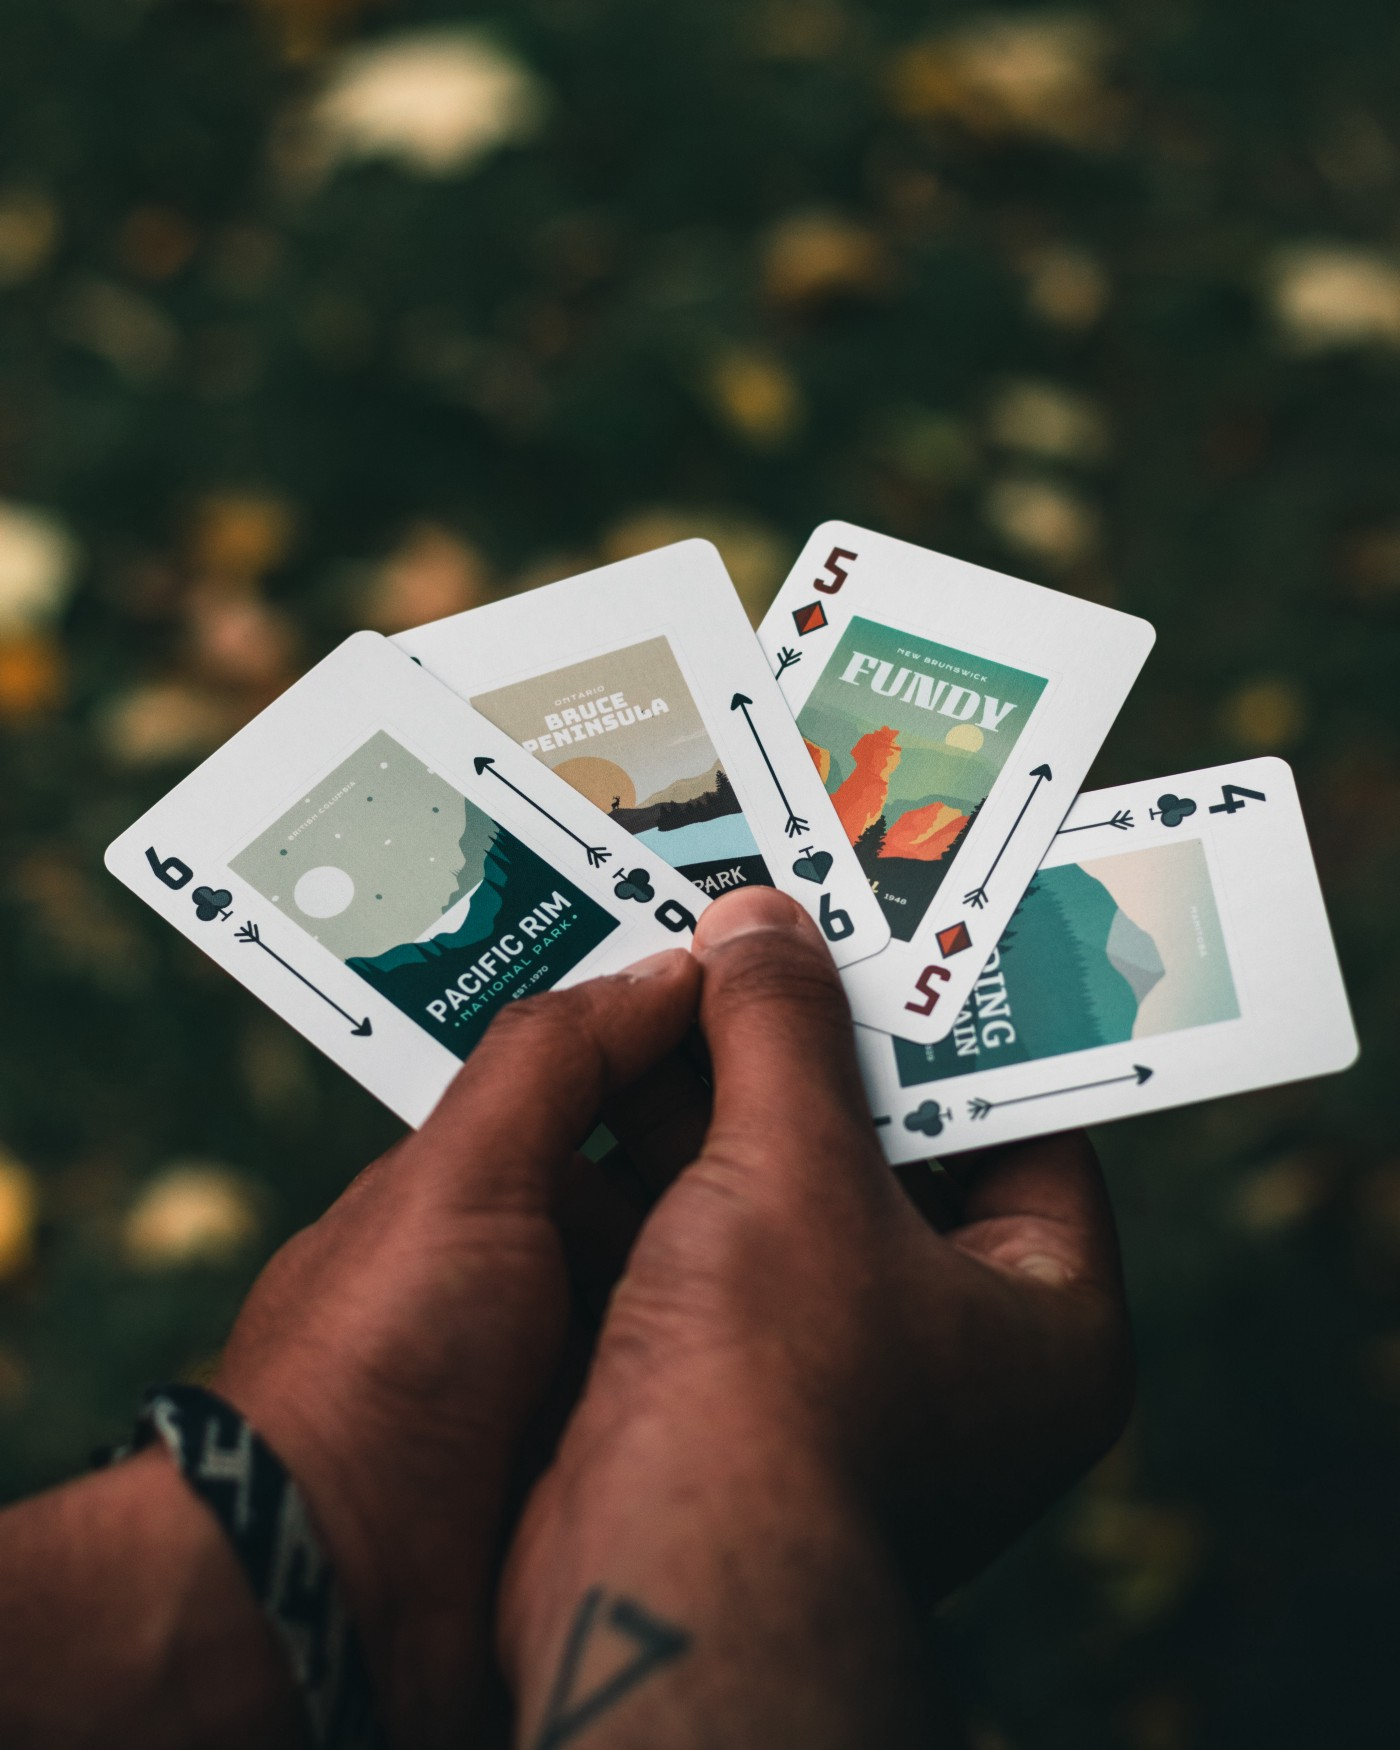 A spread hand of cards